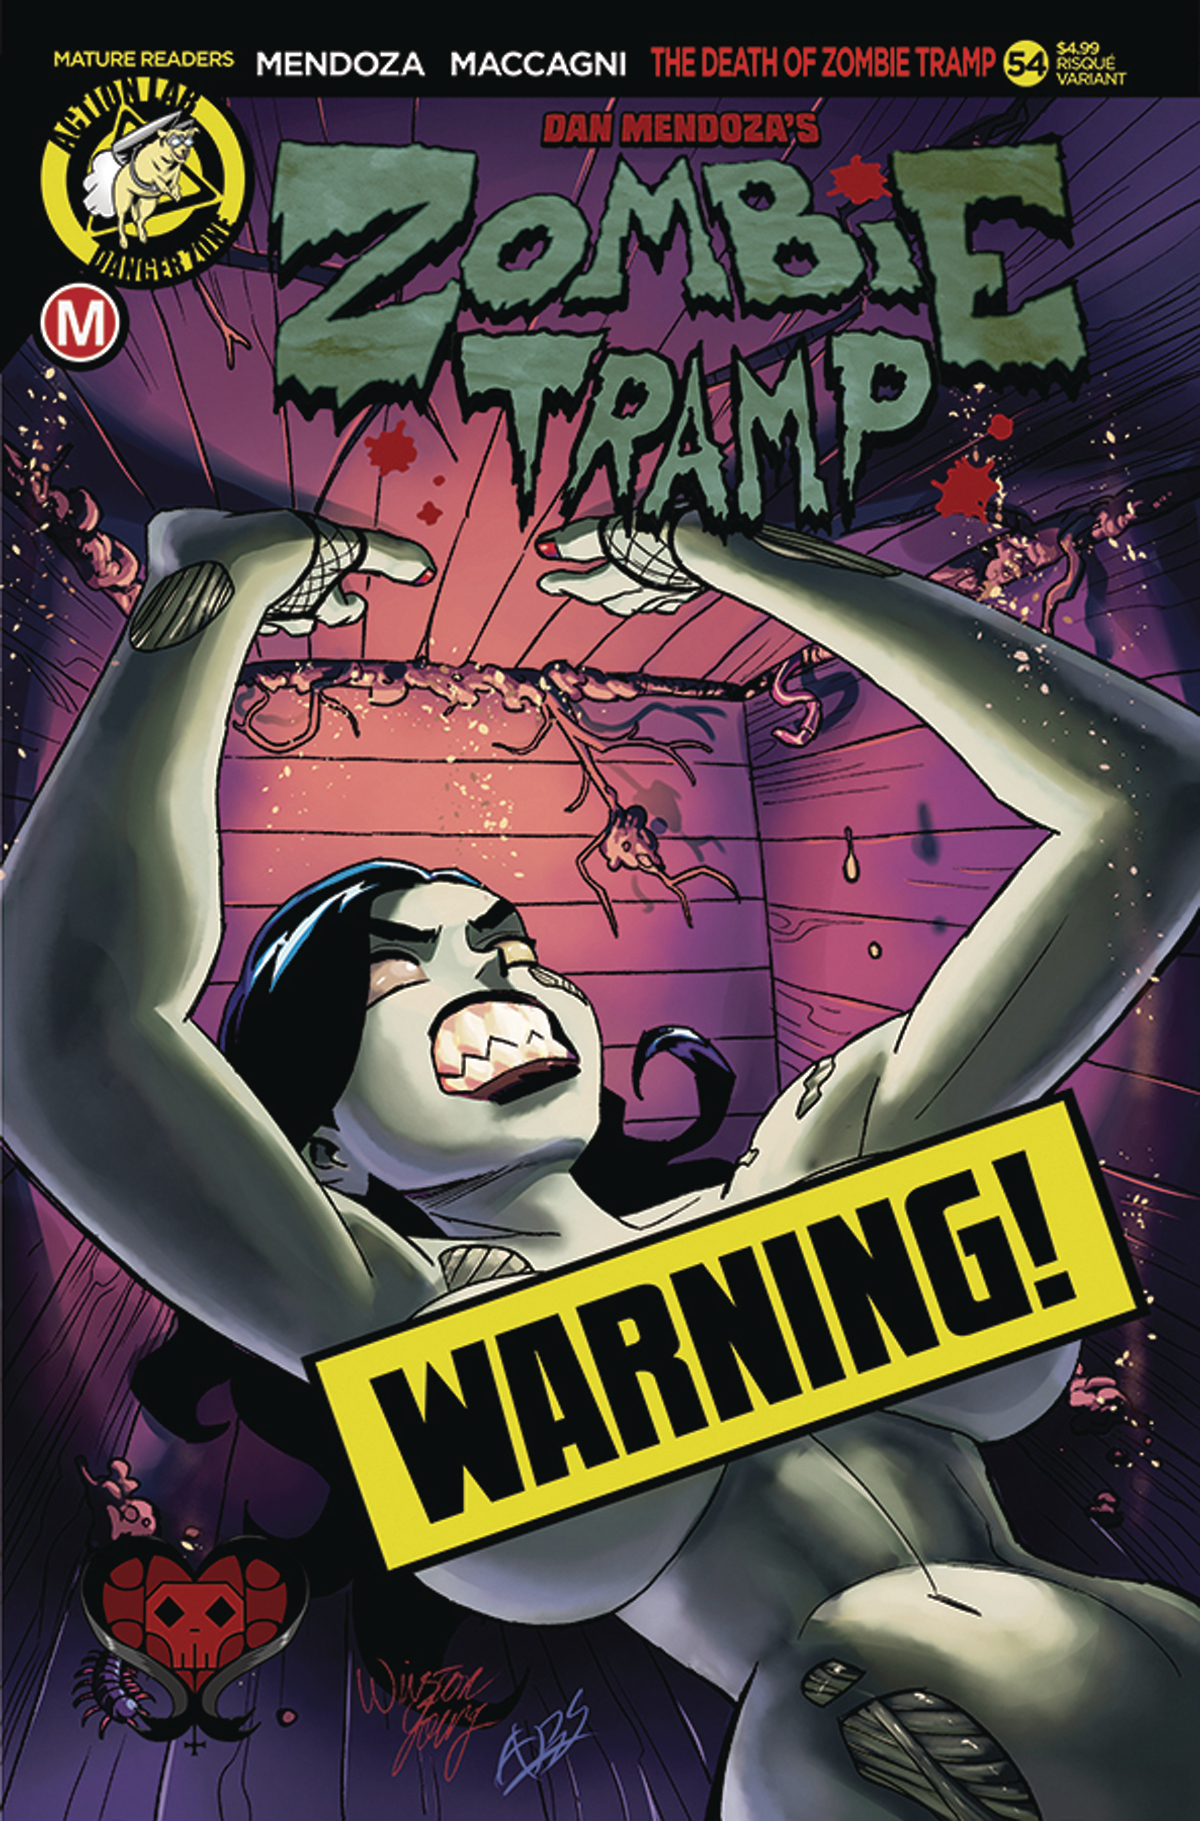 ZOMBIE TRAMP ONGOING #54 CVR B WINSTON YOUNG RISQUE (MR)